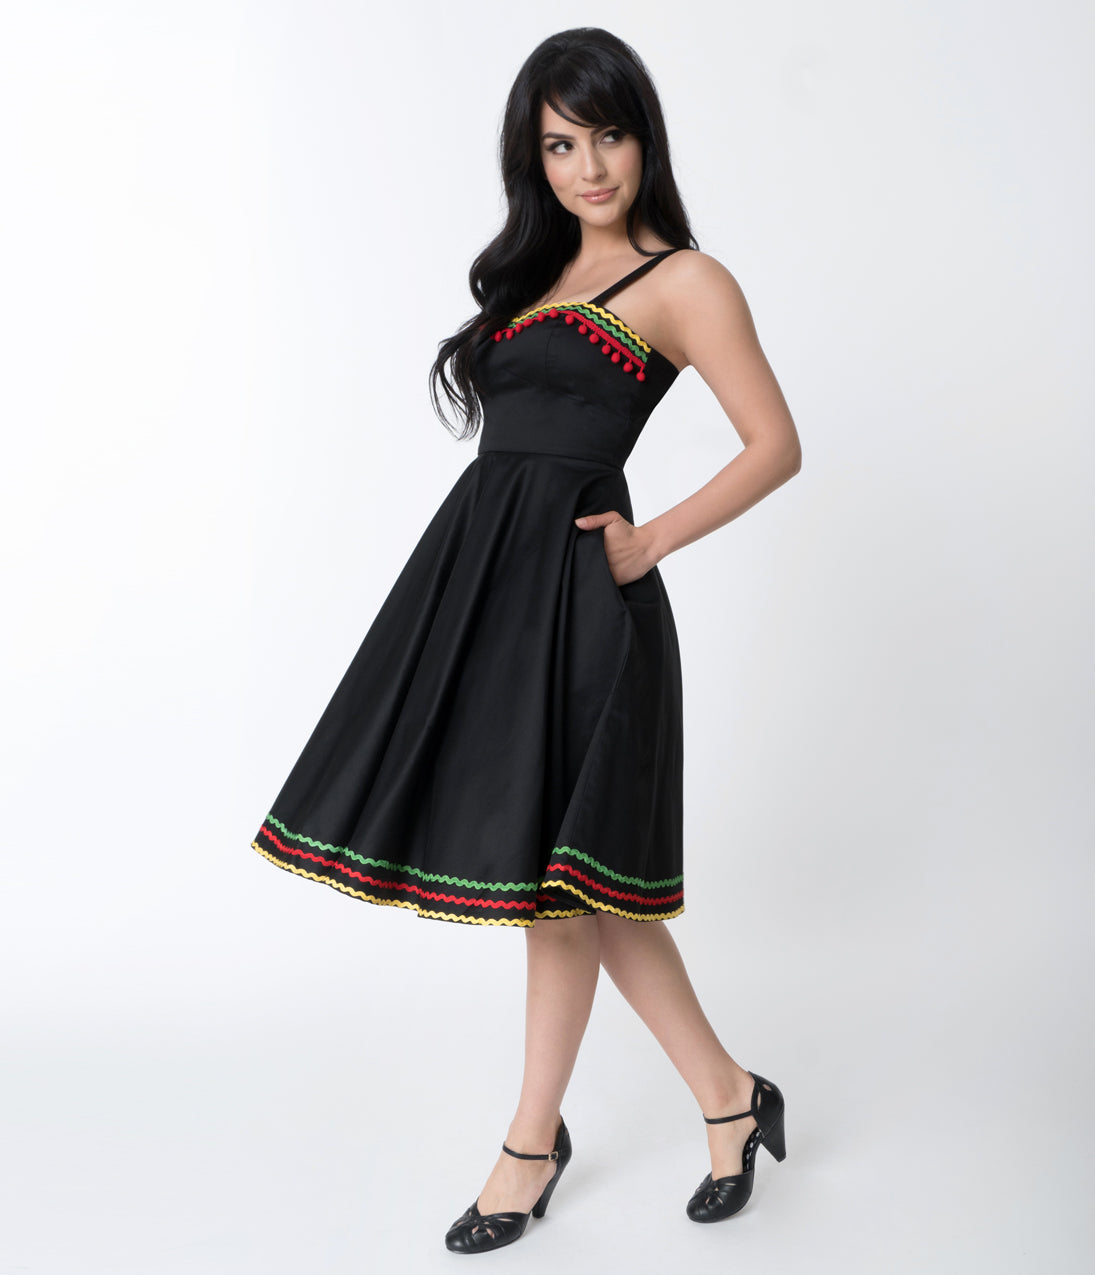 Rockabilly Dresses | Rockabilly Clothing | Viva Las Vegas Hell Bunny Black  Multicolor Trim Cotton Marianne Swing Dress $88.00 AT vintagedancer.com